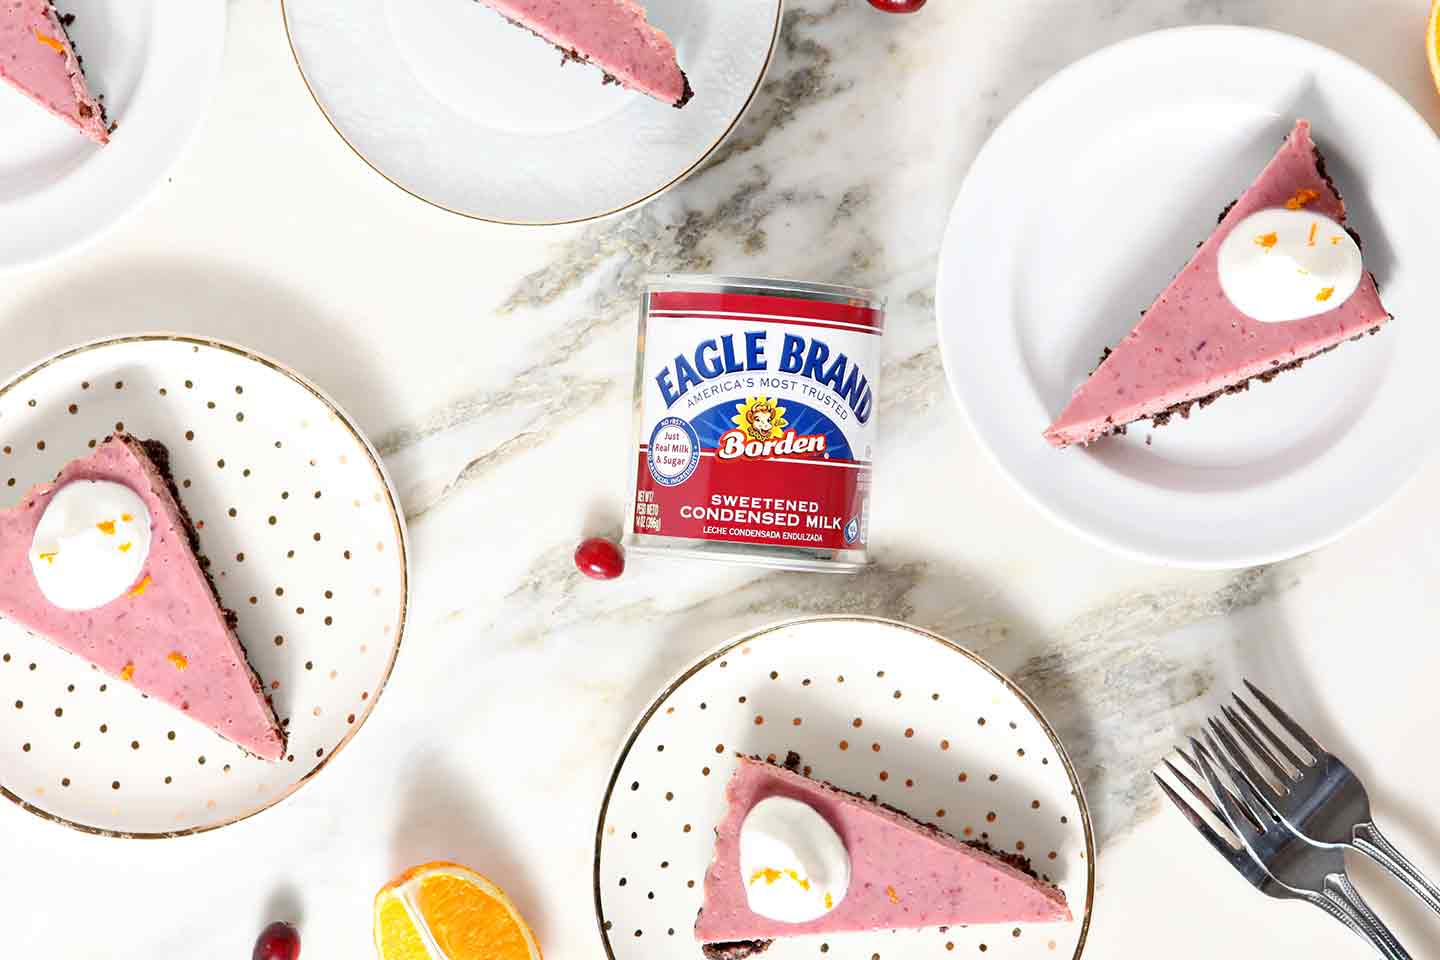 Slices of Creamy Cranberry Tart surround a can of Eagle Brand Sweetened Condensed Milk